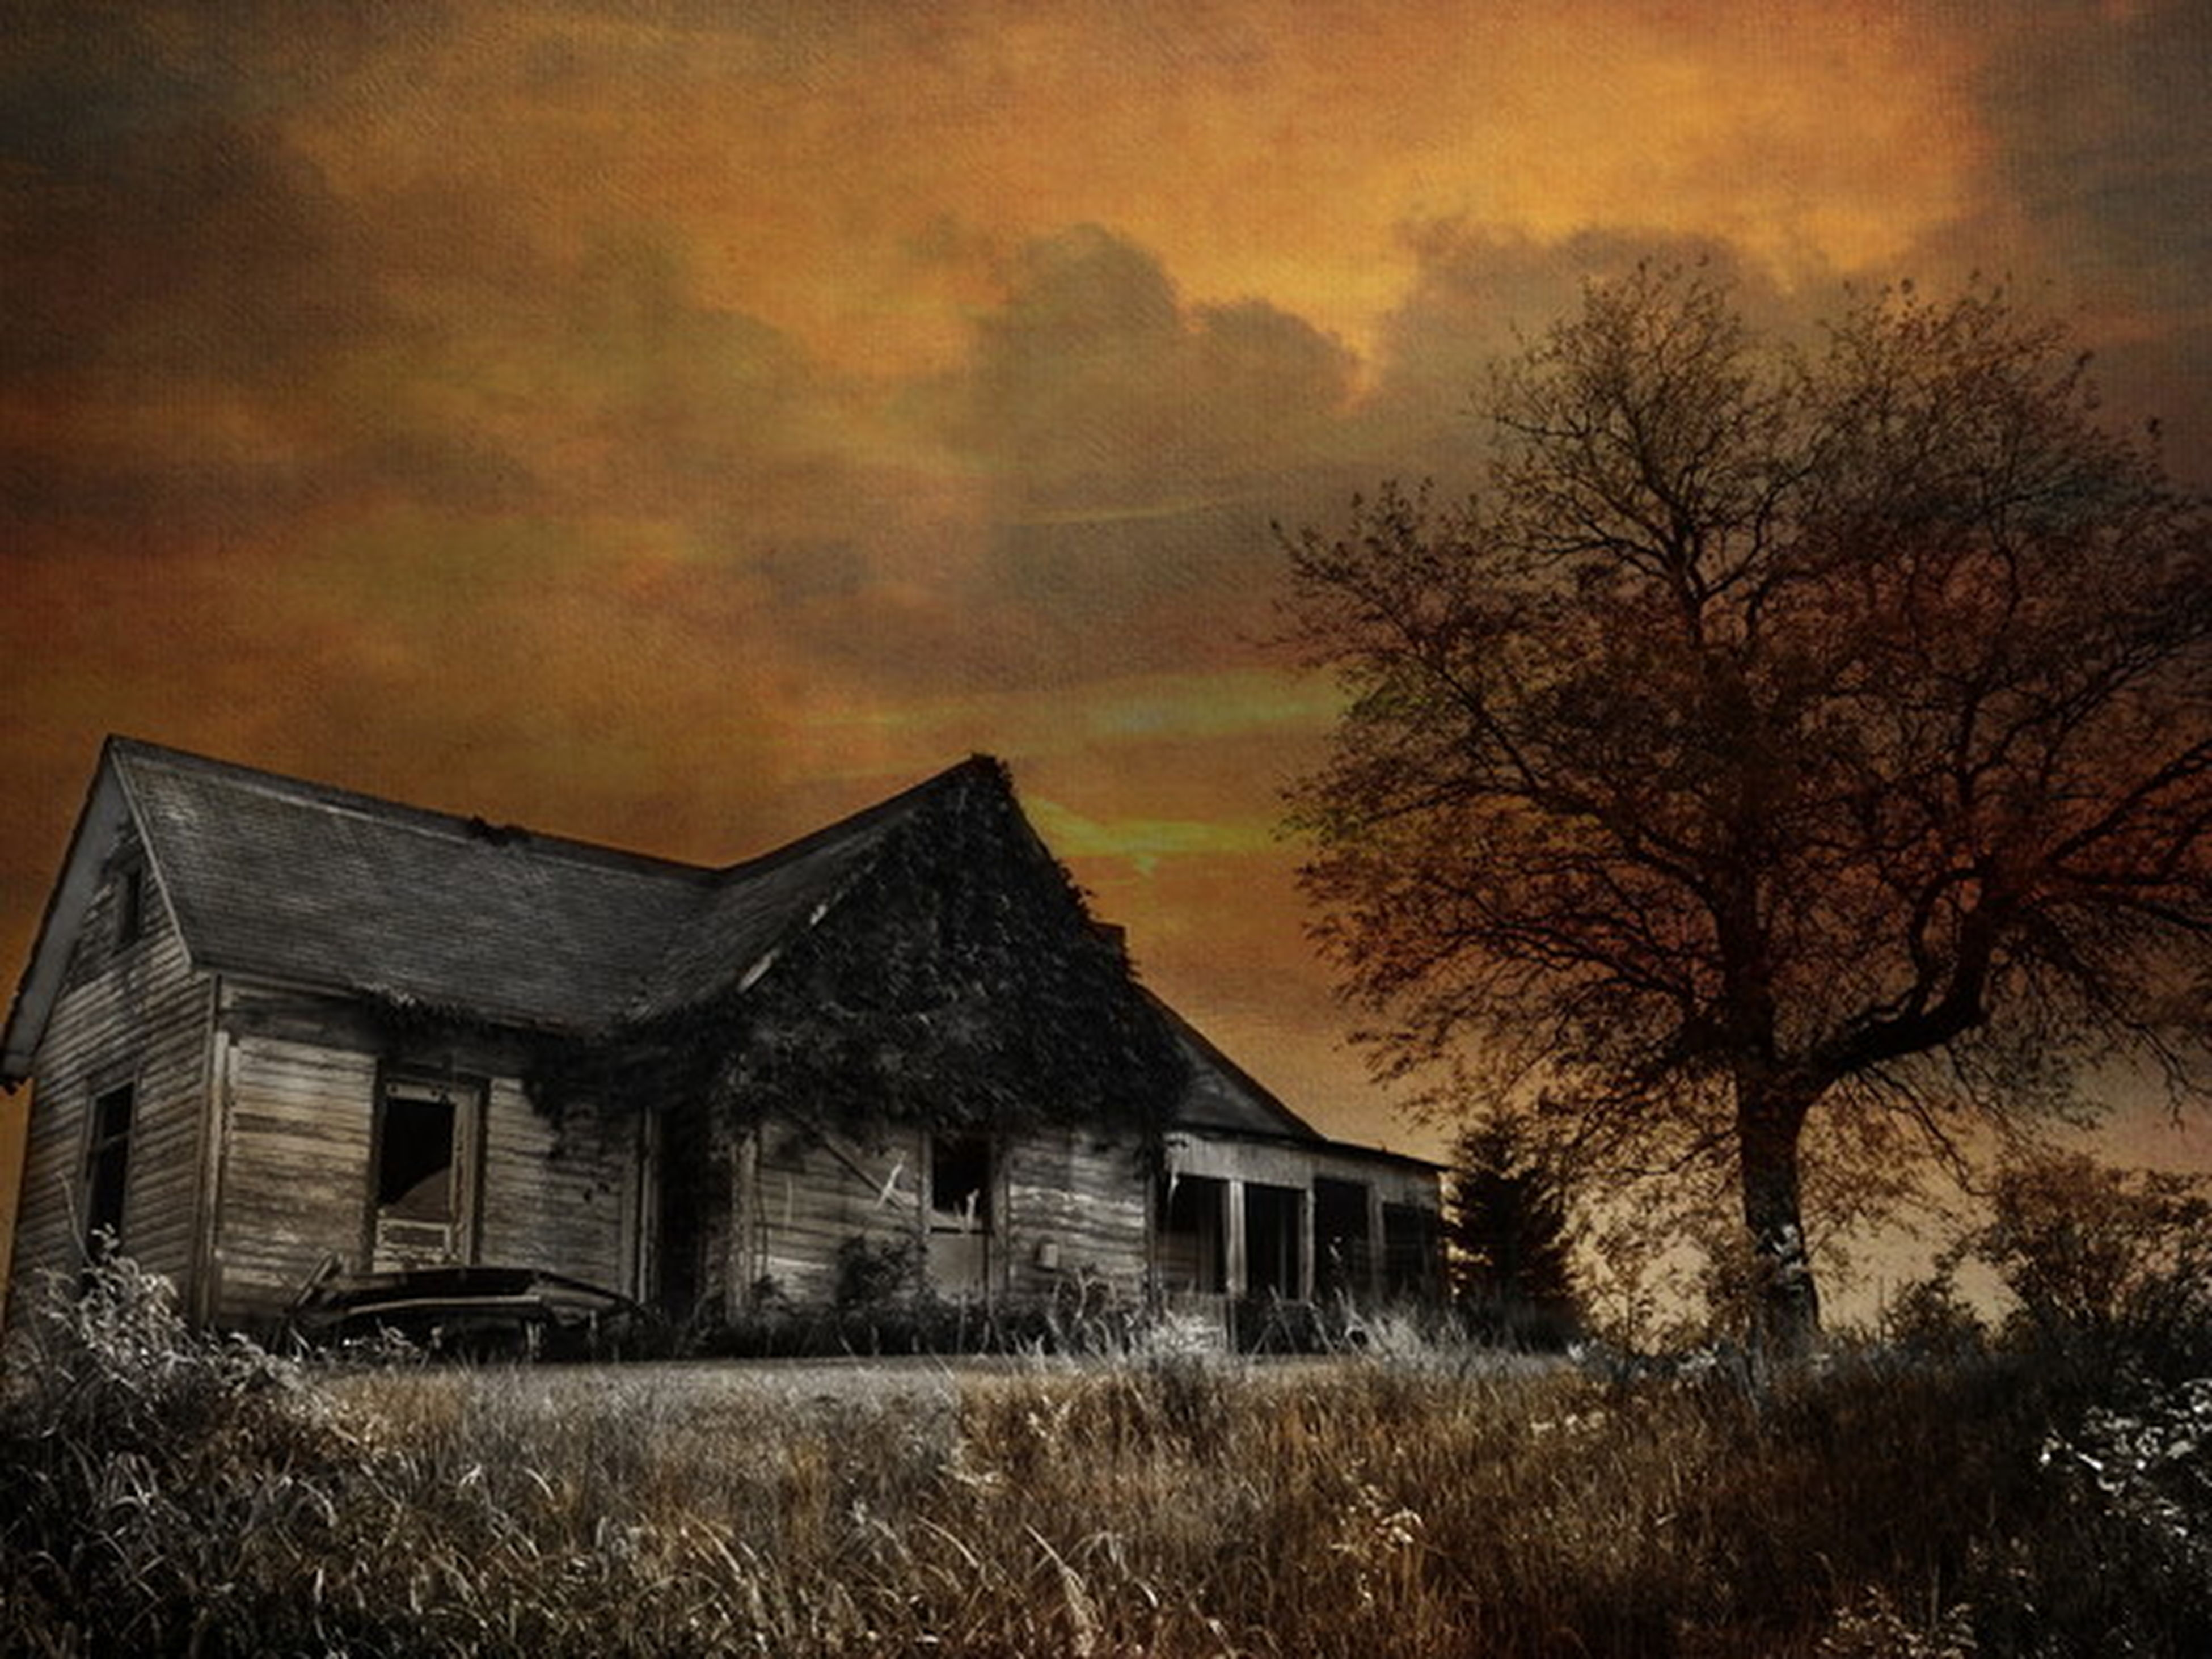 architecture, building exterior, built structure, house, sunset, sky, residential structure, orange color, residential building, cloud - sky, tree, bare tree, field, outdoors, nature, grass, no people, window, barn, rural scene